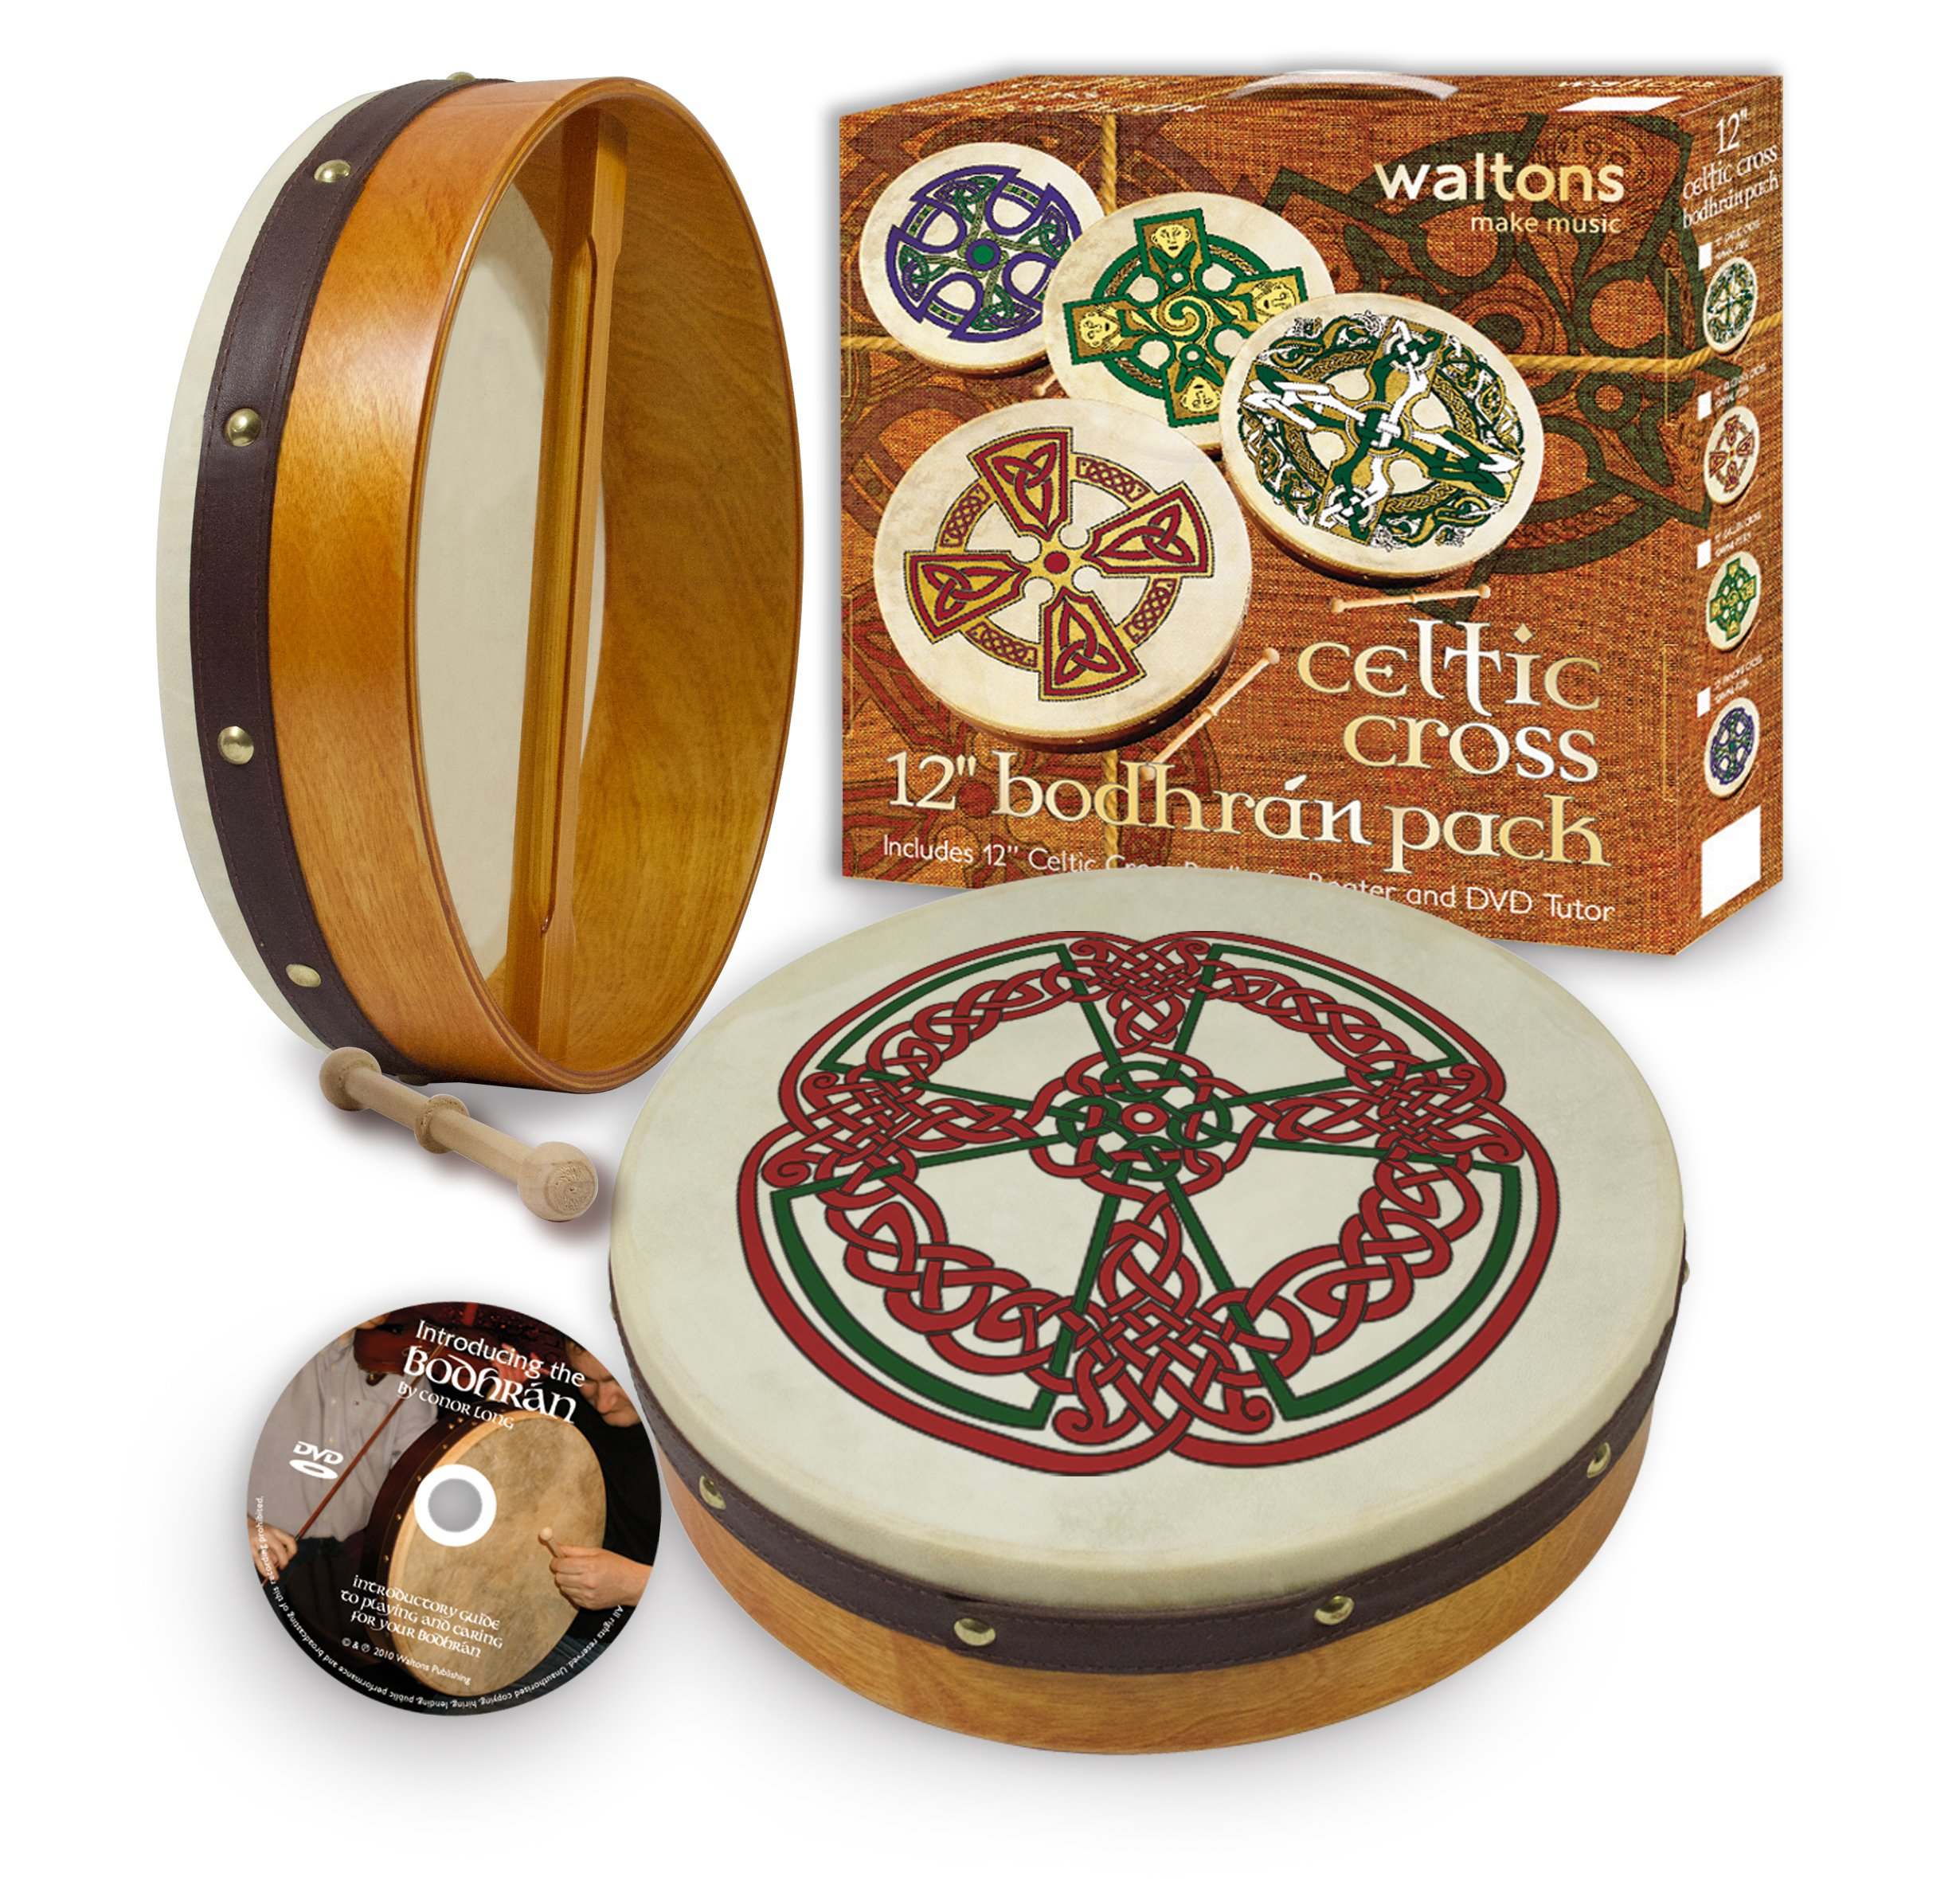 Waltons Bodhrán 12'' (Knotwork) - Handcrafted Irish Instrument - Crisp & Musical Tone - Hardwood Beater Included w/Purchase